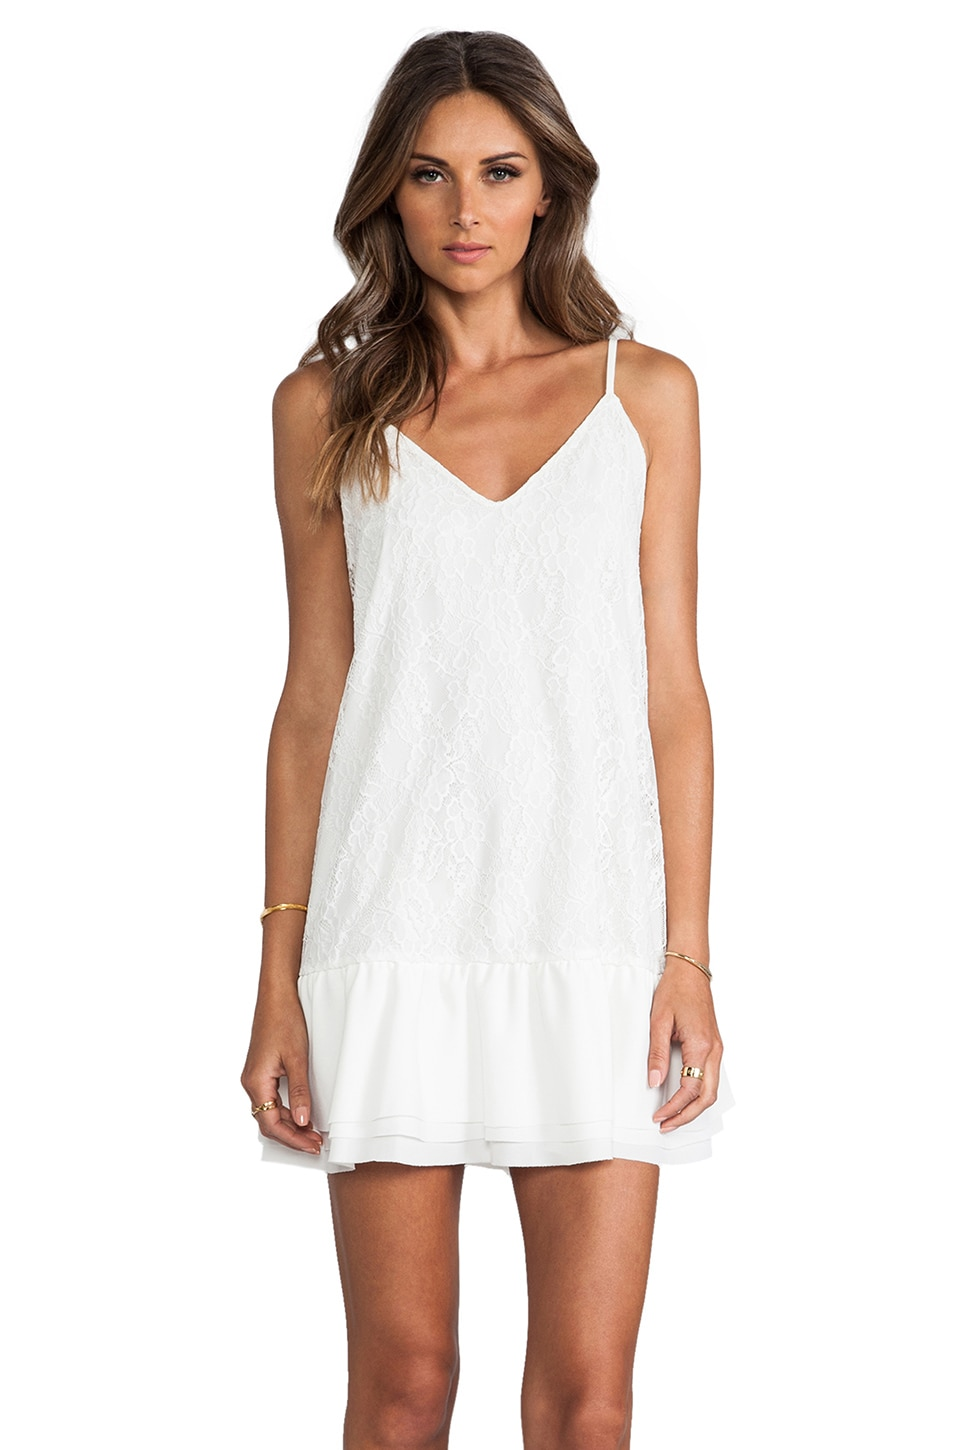 Lovers + Friends Sure Thing Dress in White